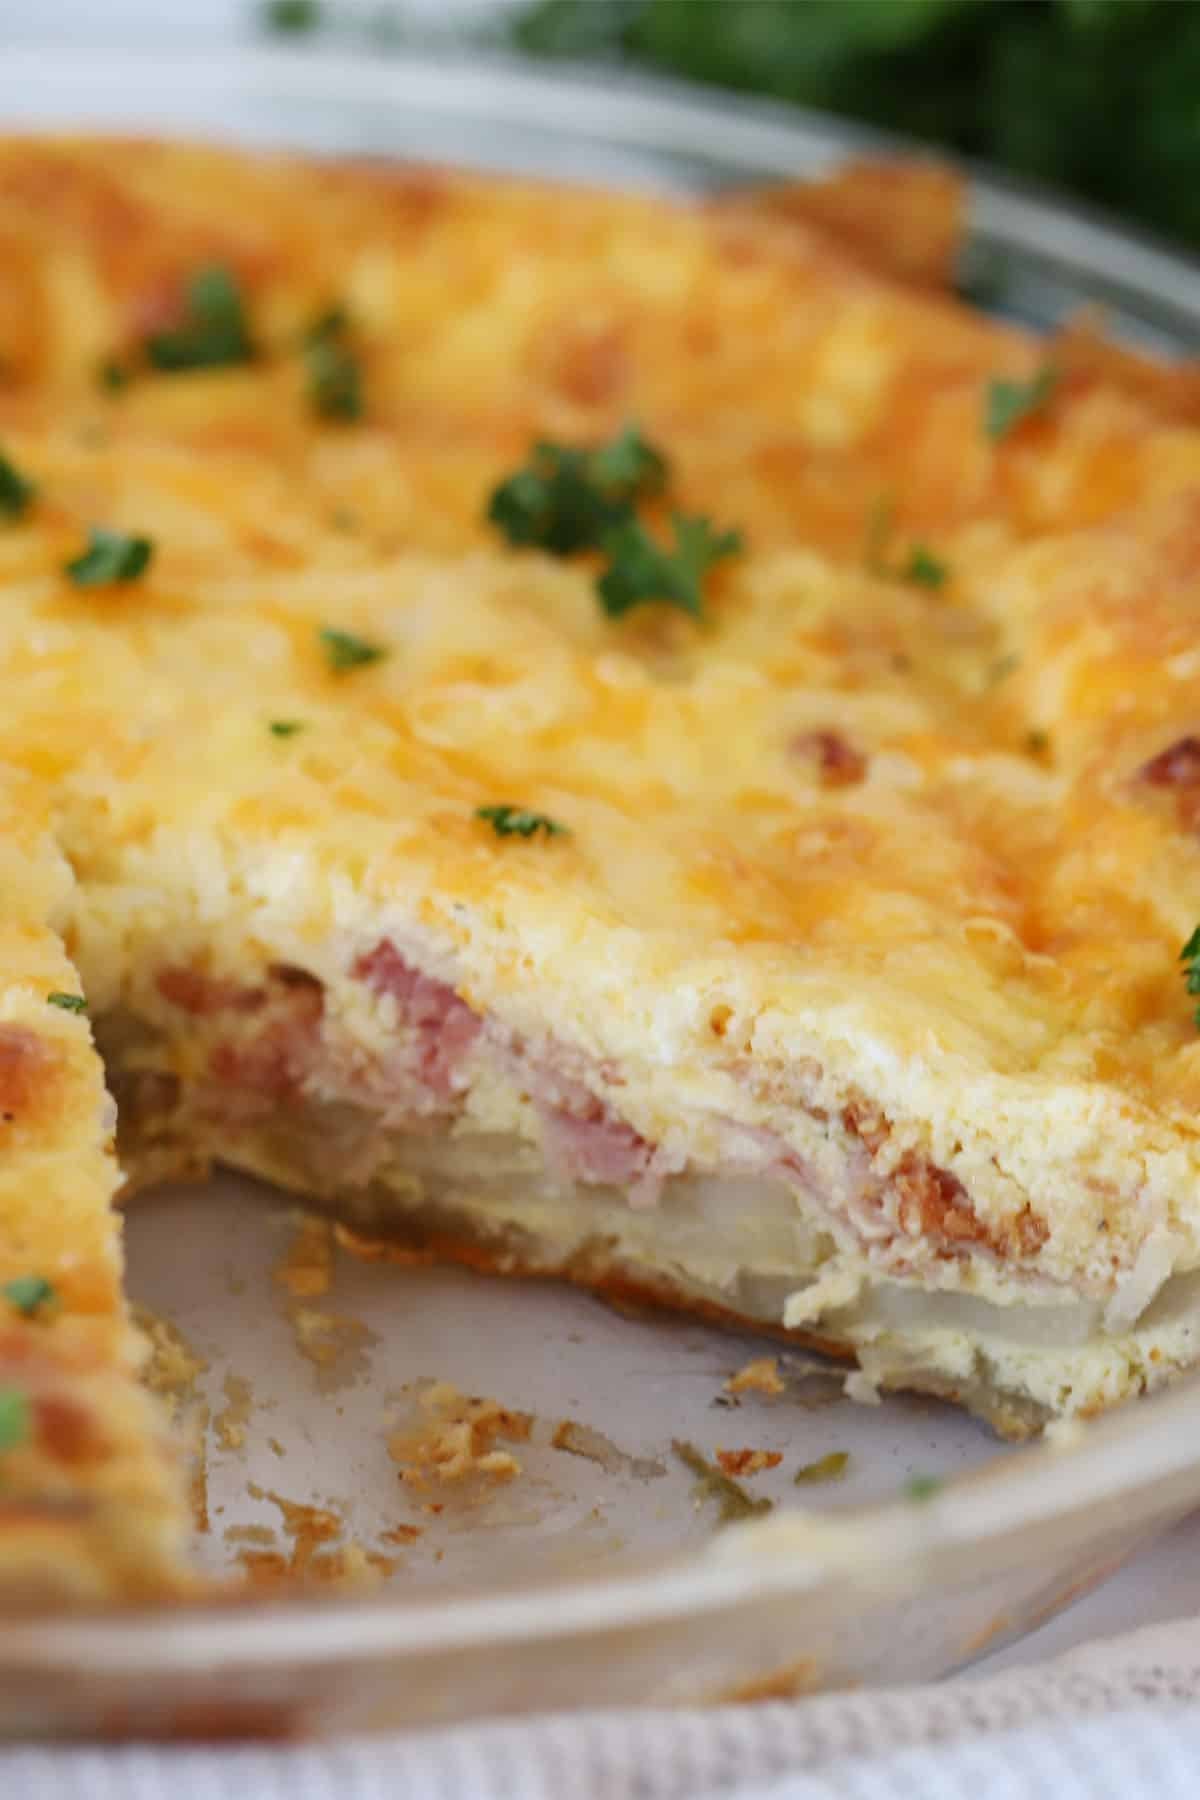 Baked quiche in a pie dish with a slice removed, garnished with fresh parsley.